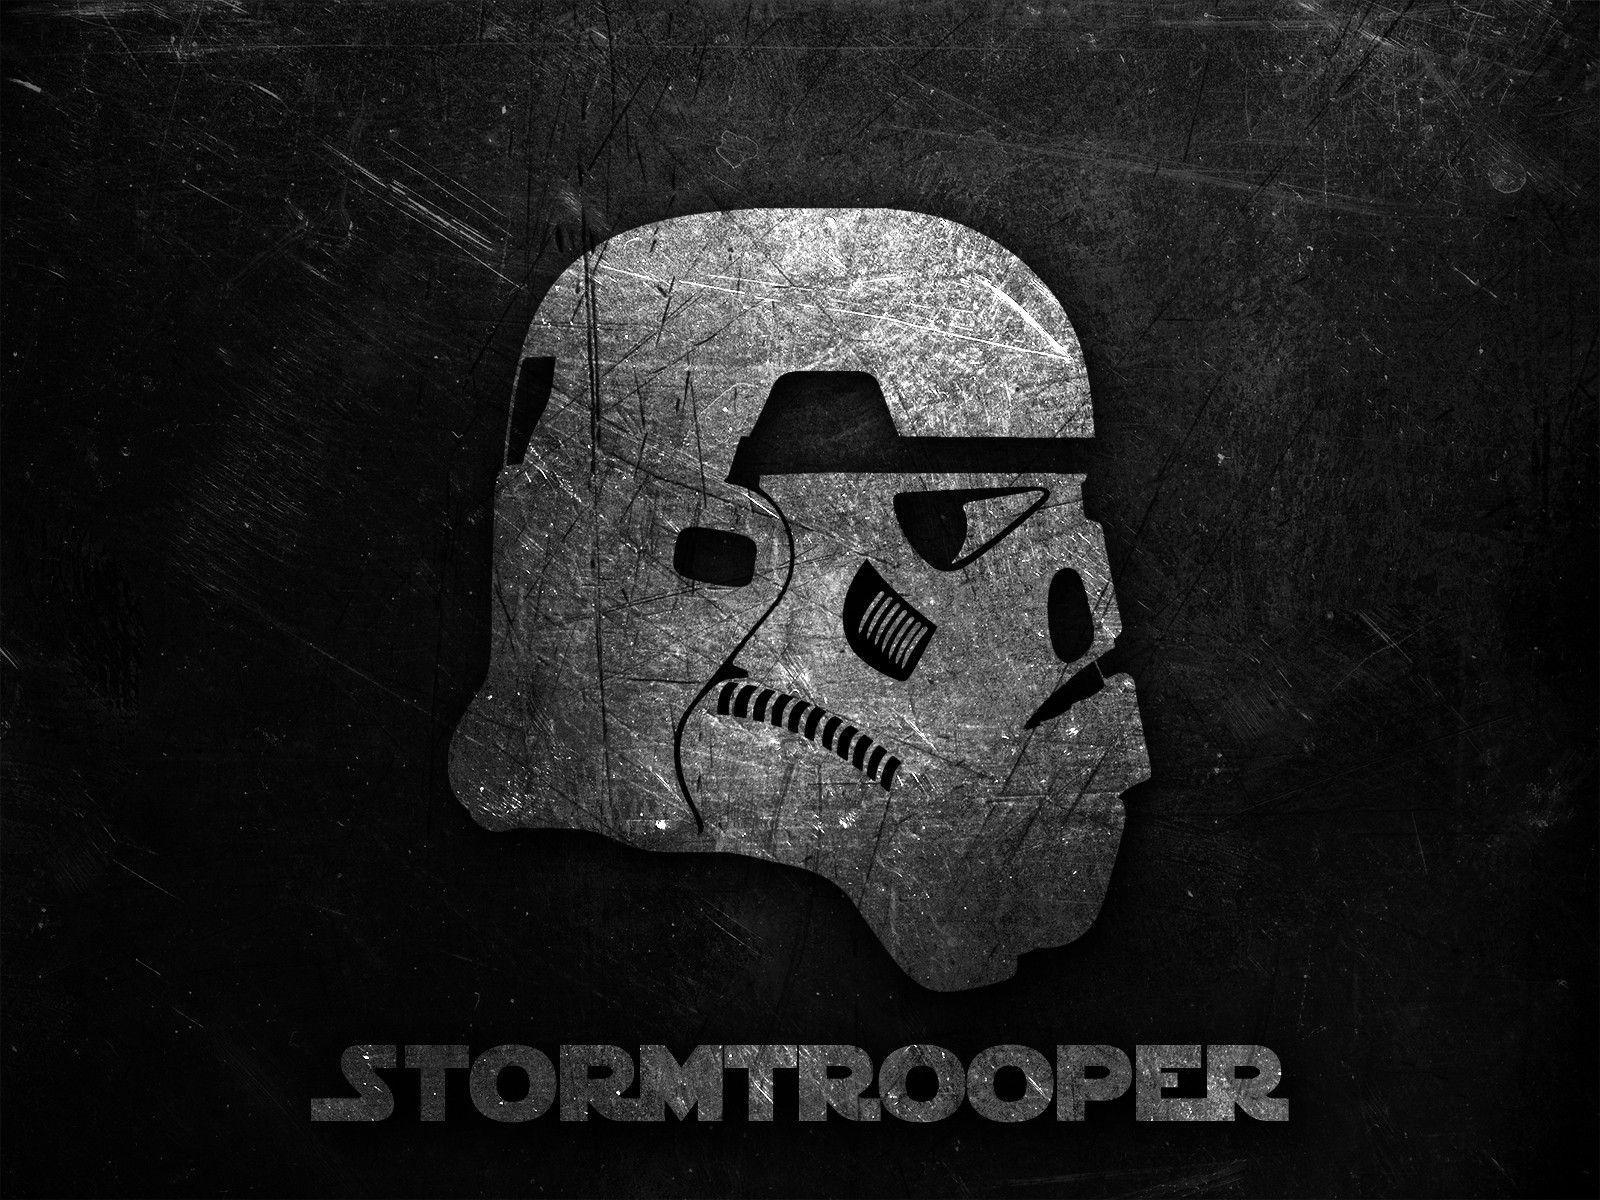 Artwork Head Metal Star Wars Stormtroopers Textures